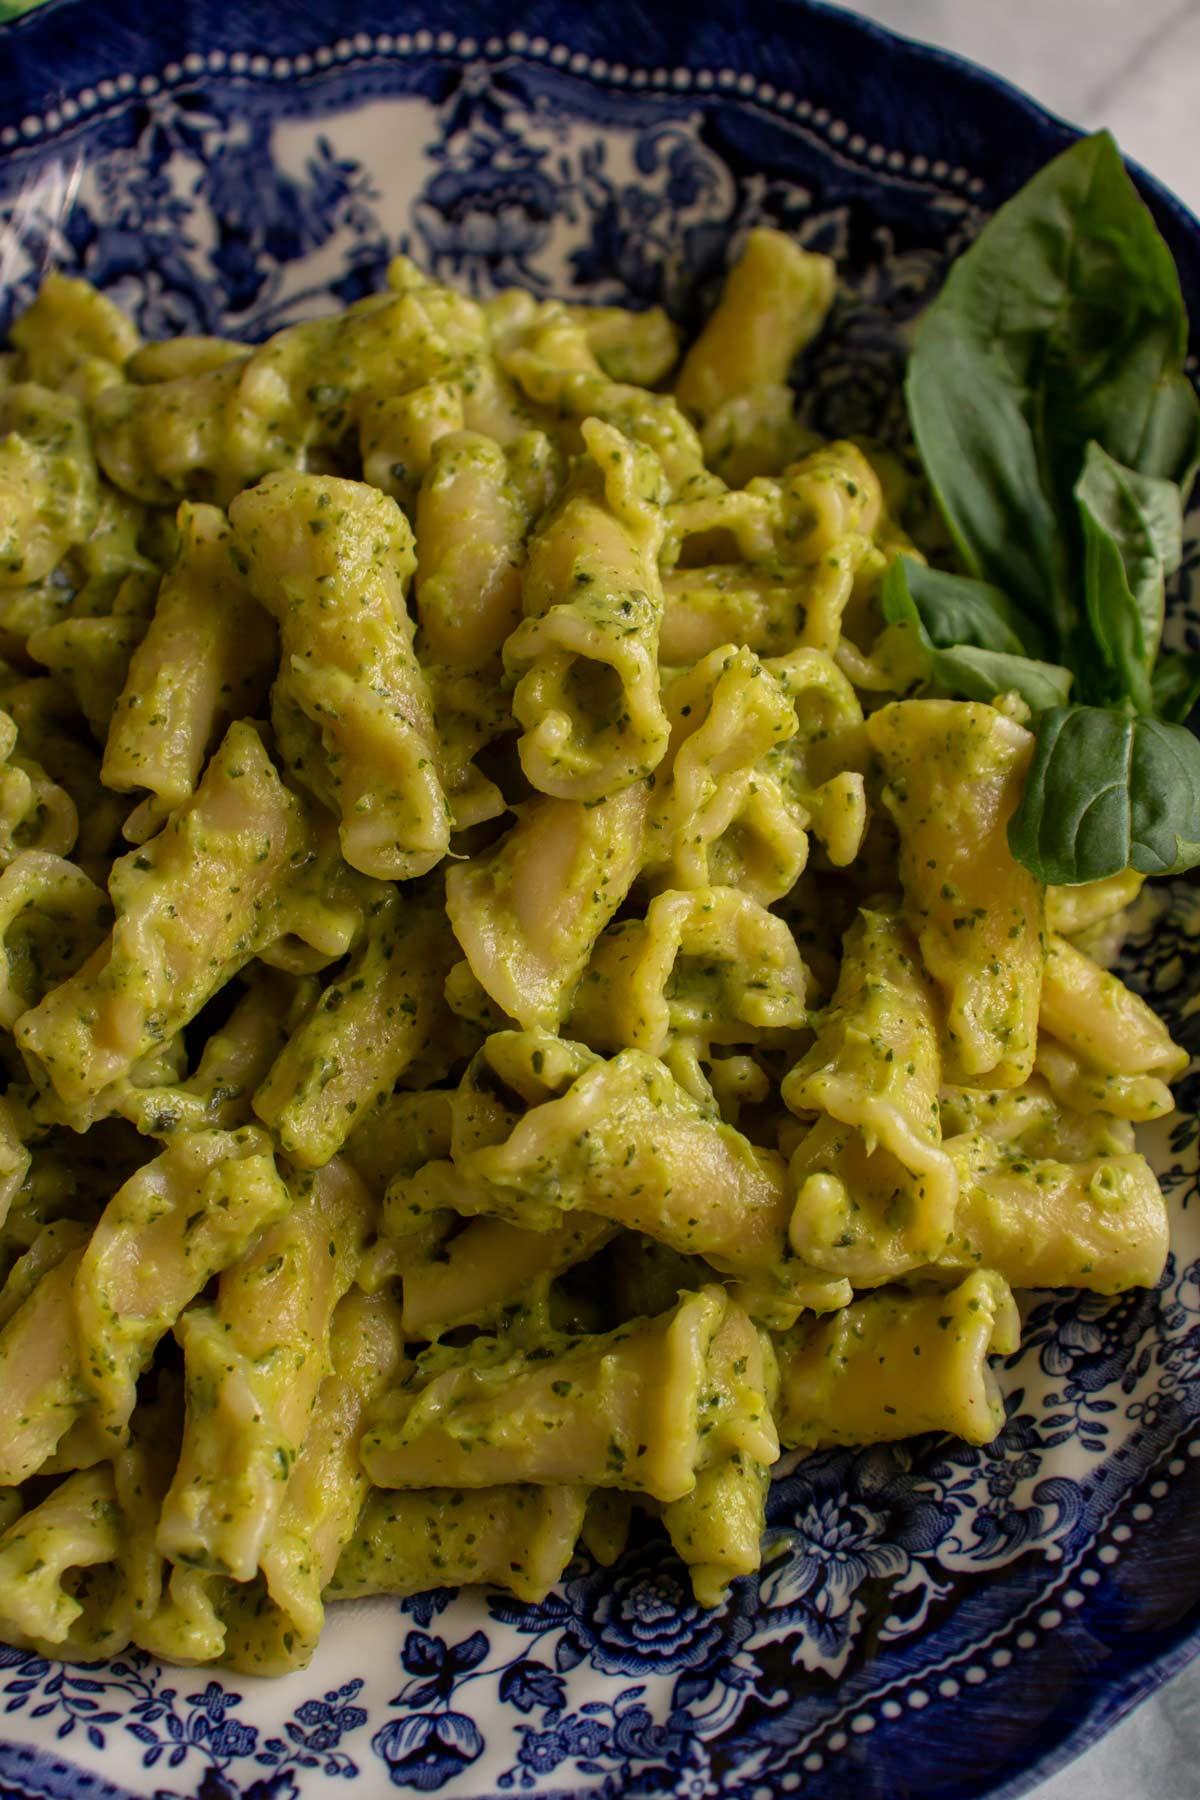 Closeup of a blue bowl filled with campanelle pasta tossed in green pureed zucchini sauce.